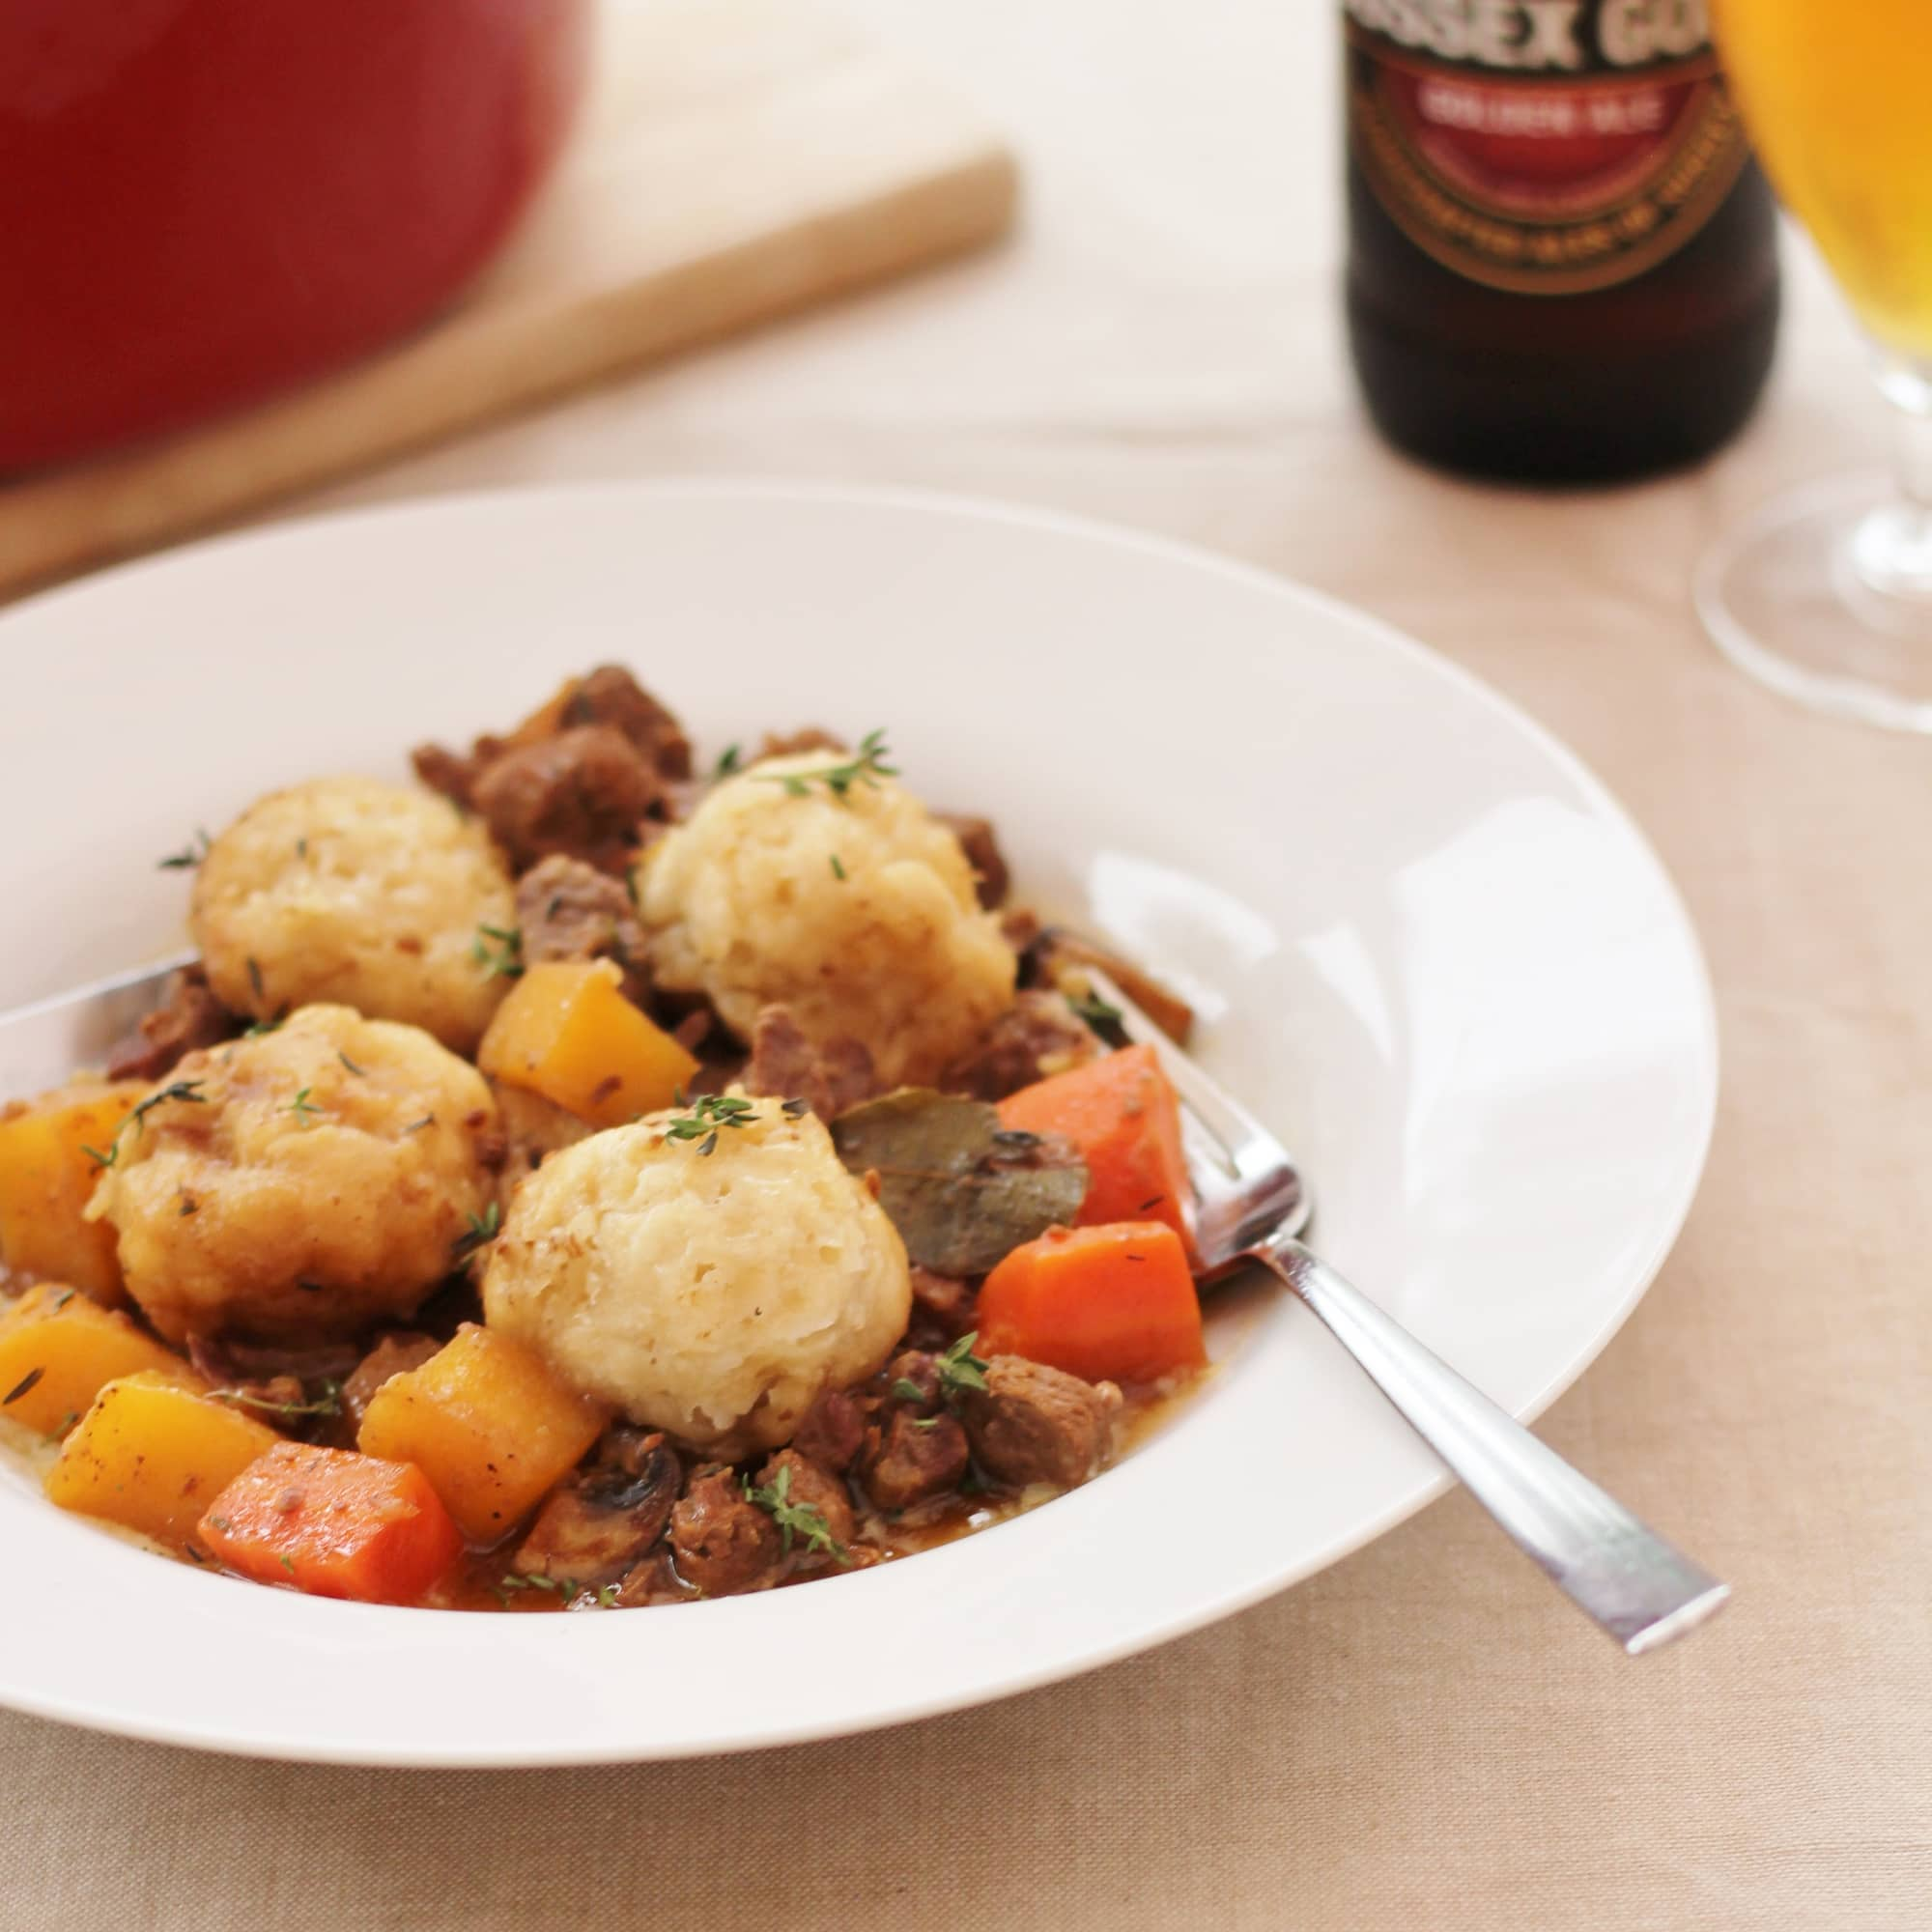 Perfect For Chilly Winter Nights This Easy Peasy Beef And Ale Stew With Dumplings Is A Total Comfort Food Classic The Edible Equivalent Of A Great Big